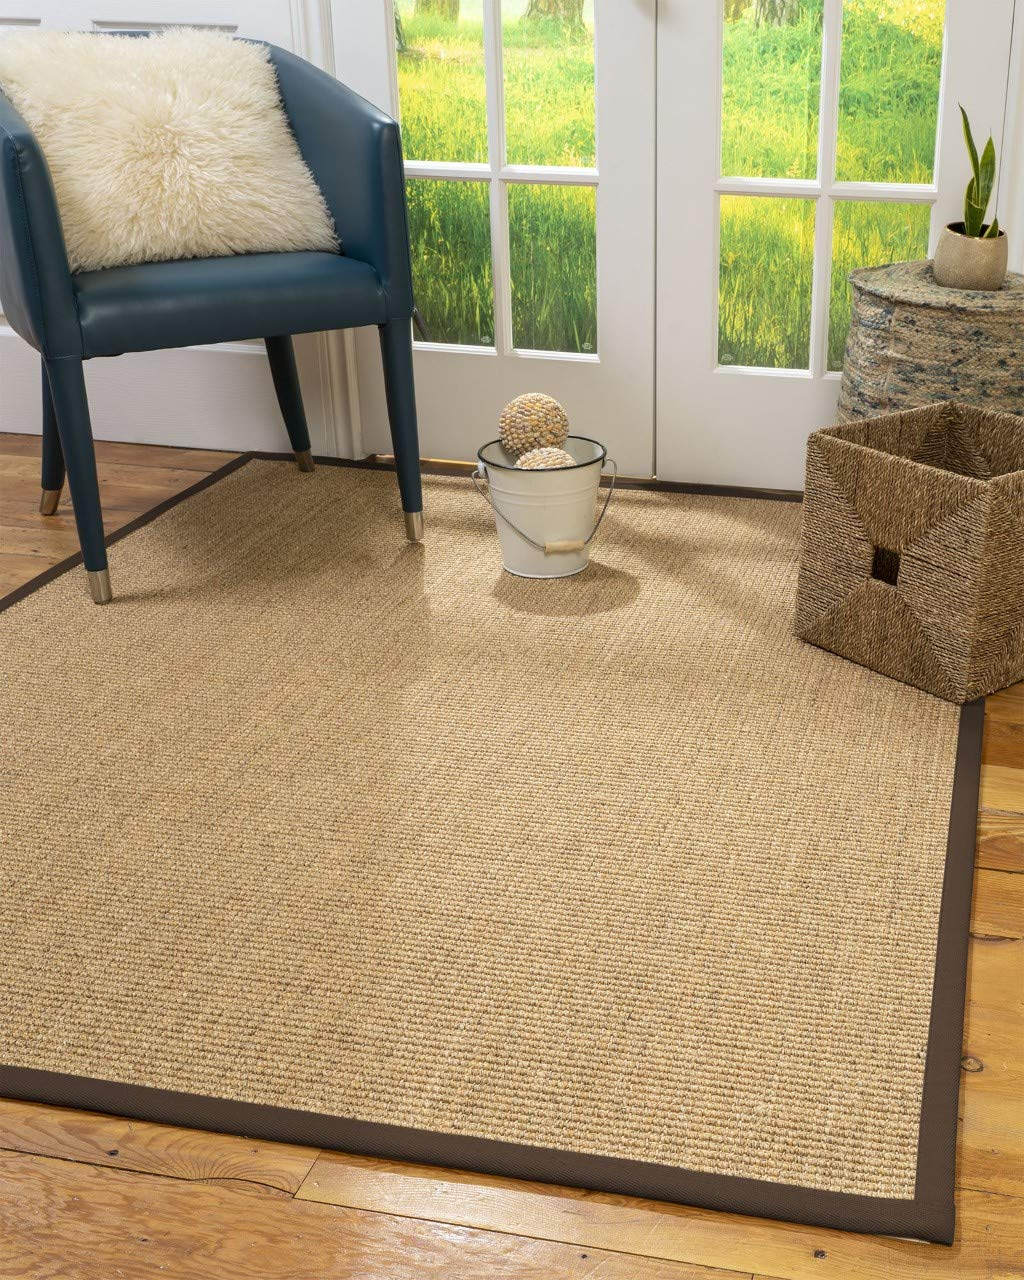 Natural Area Rugs 100 Natural Fiber Handmade Studio, Beige Sisal Rug, 6 x 9 Oval Fudge Border